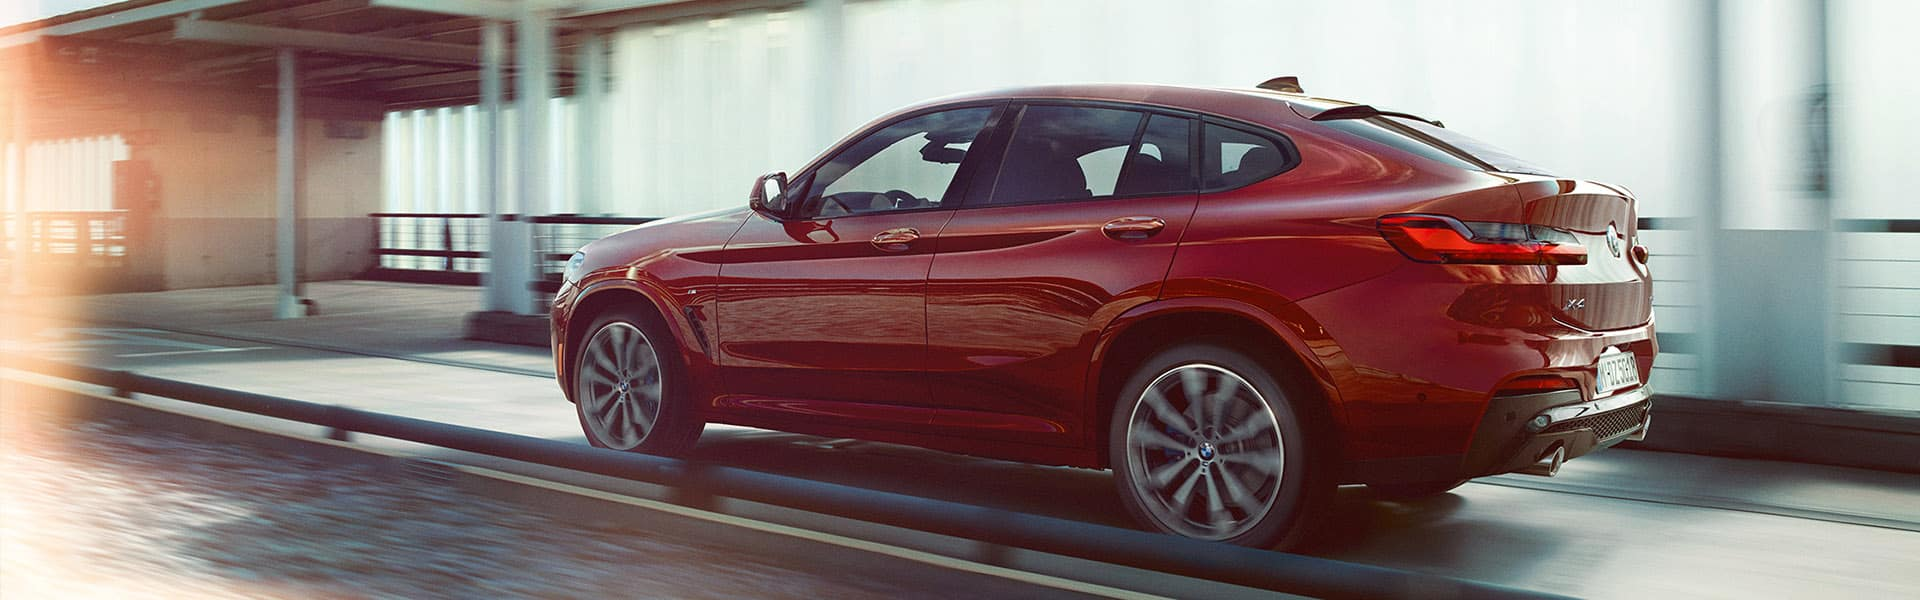 The  new 2022 BMW X4, a dynamic and luxurious new sports activity coupe ready to make a statement.